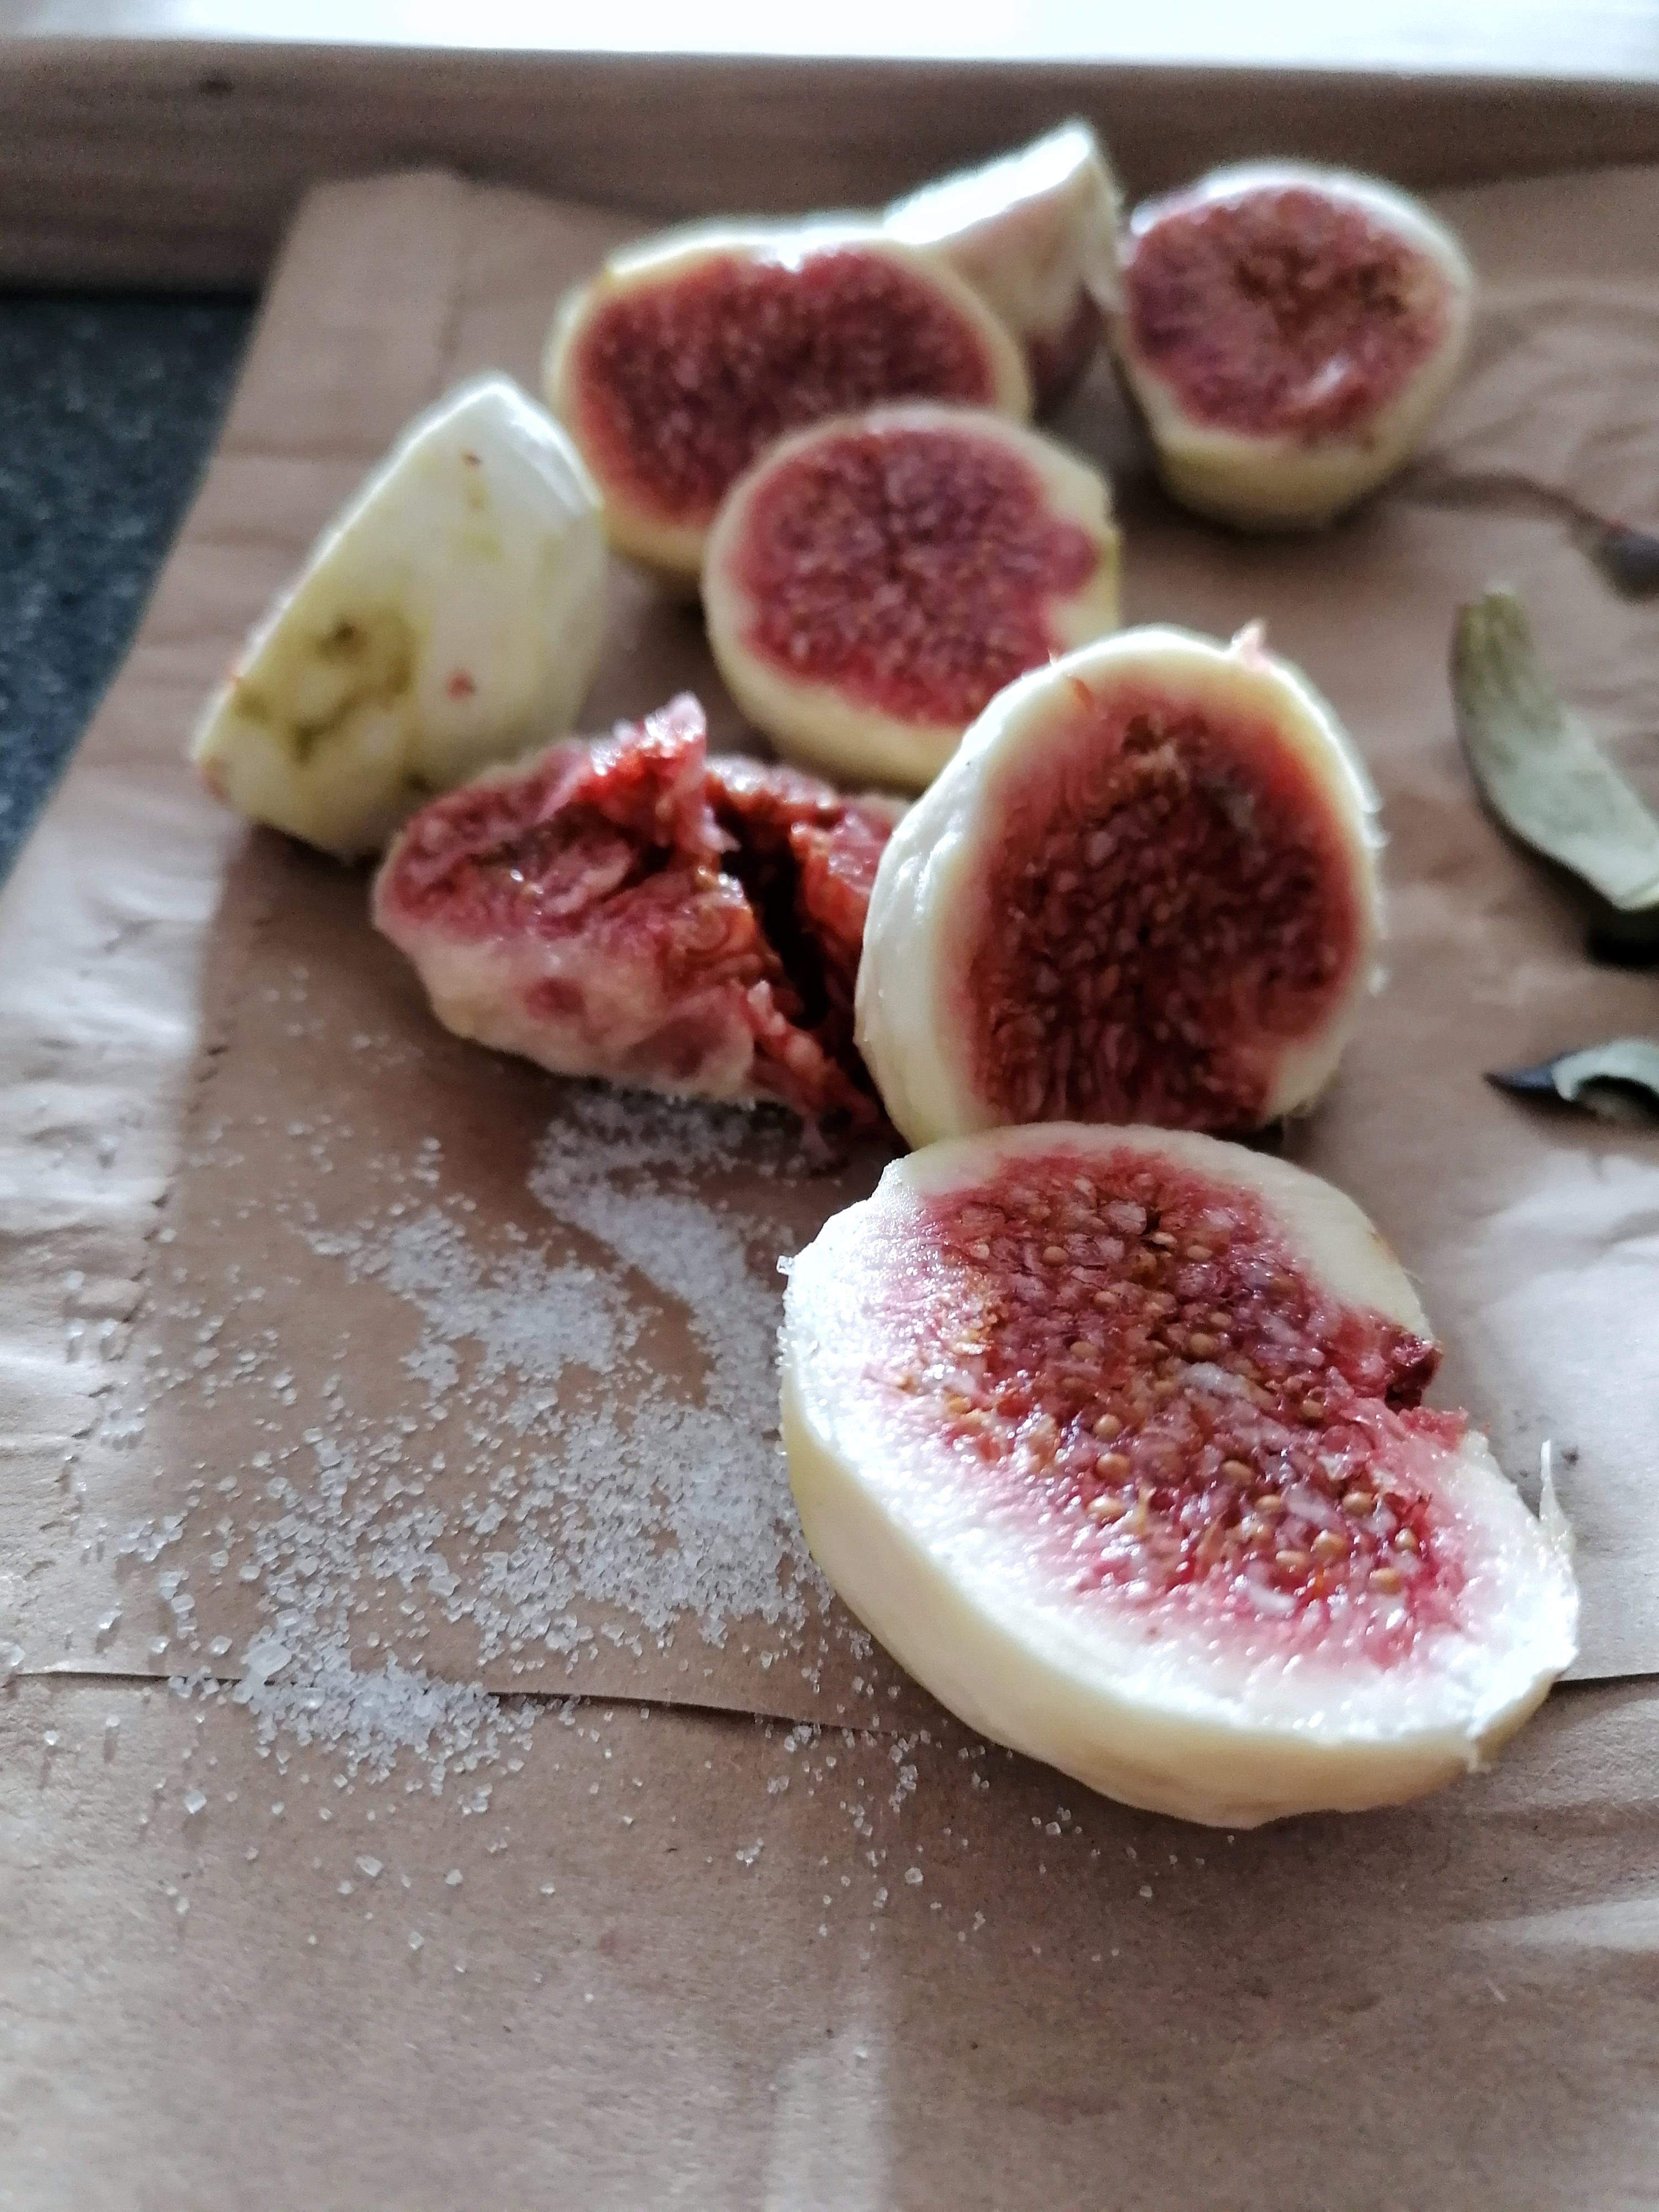 Autumn at home. Fig jam